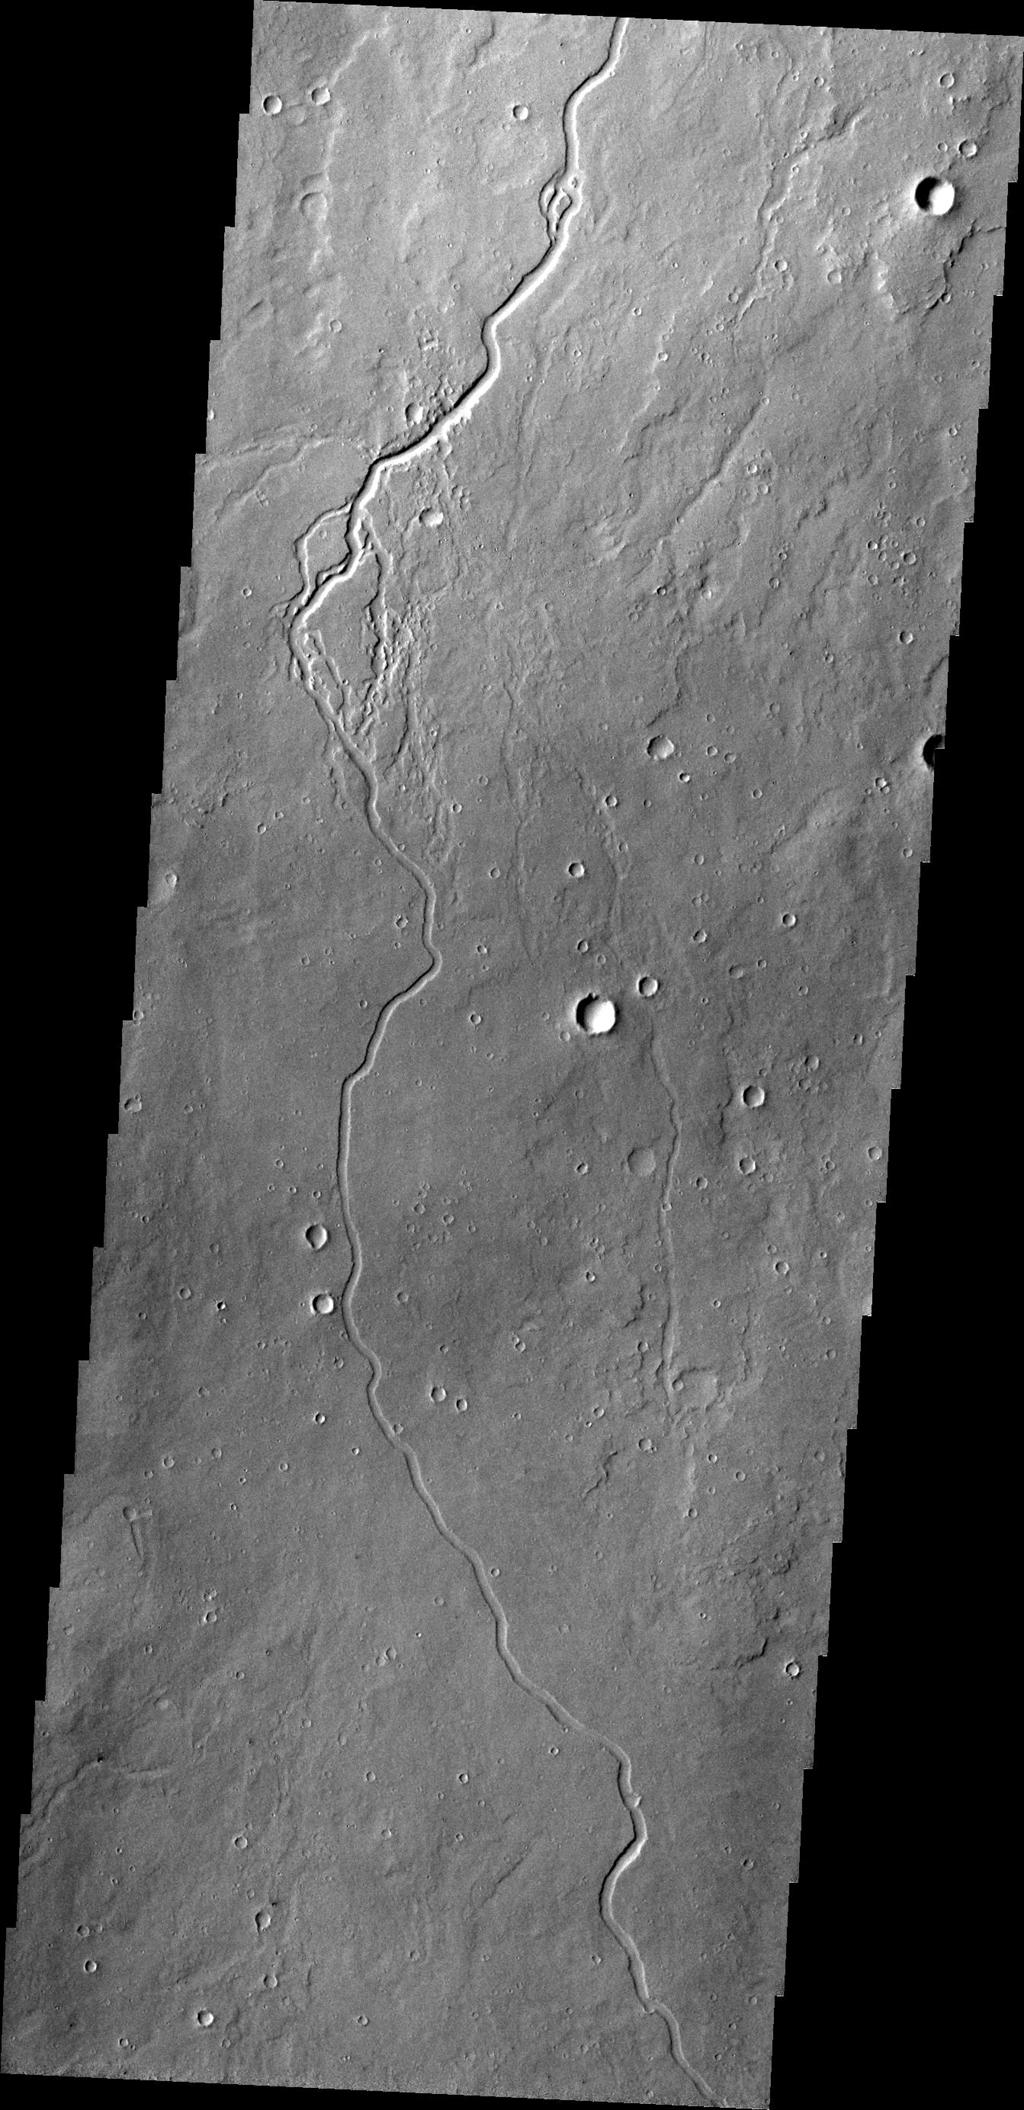 This image captured by NASA's 2001 Mars Odyssey shows just one of many lava channels located on the Elysium Mons volcanic complex.